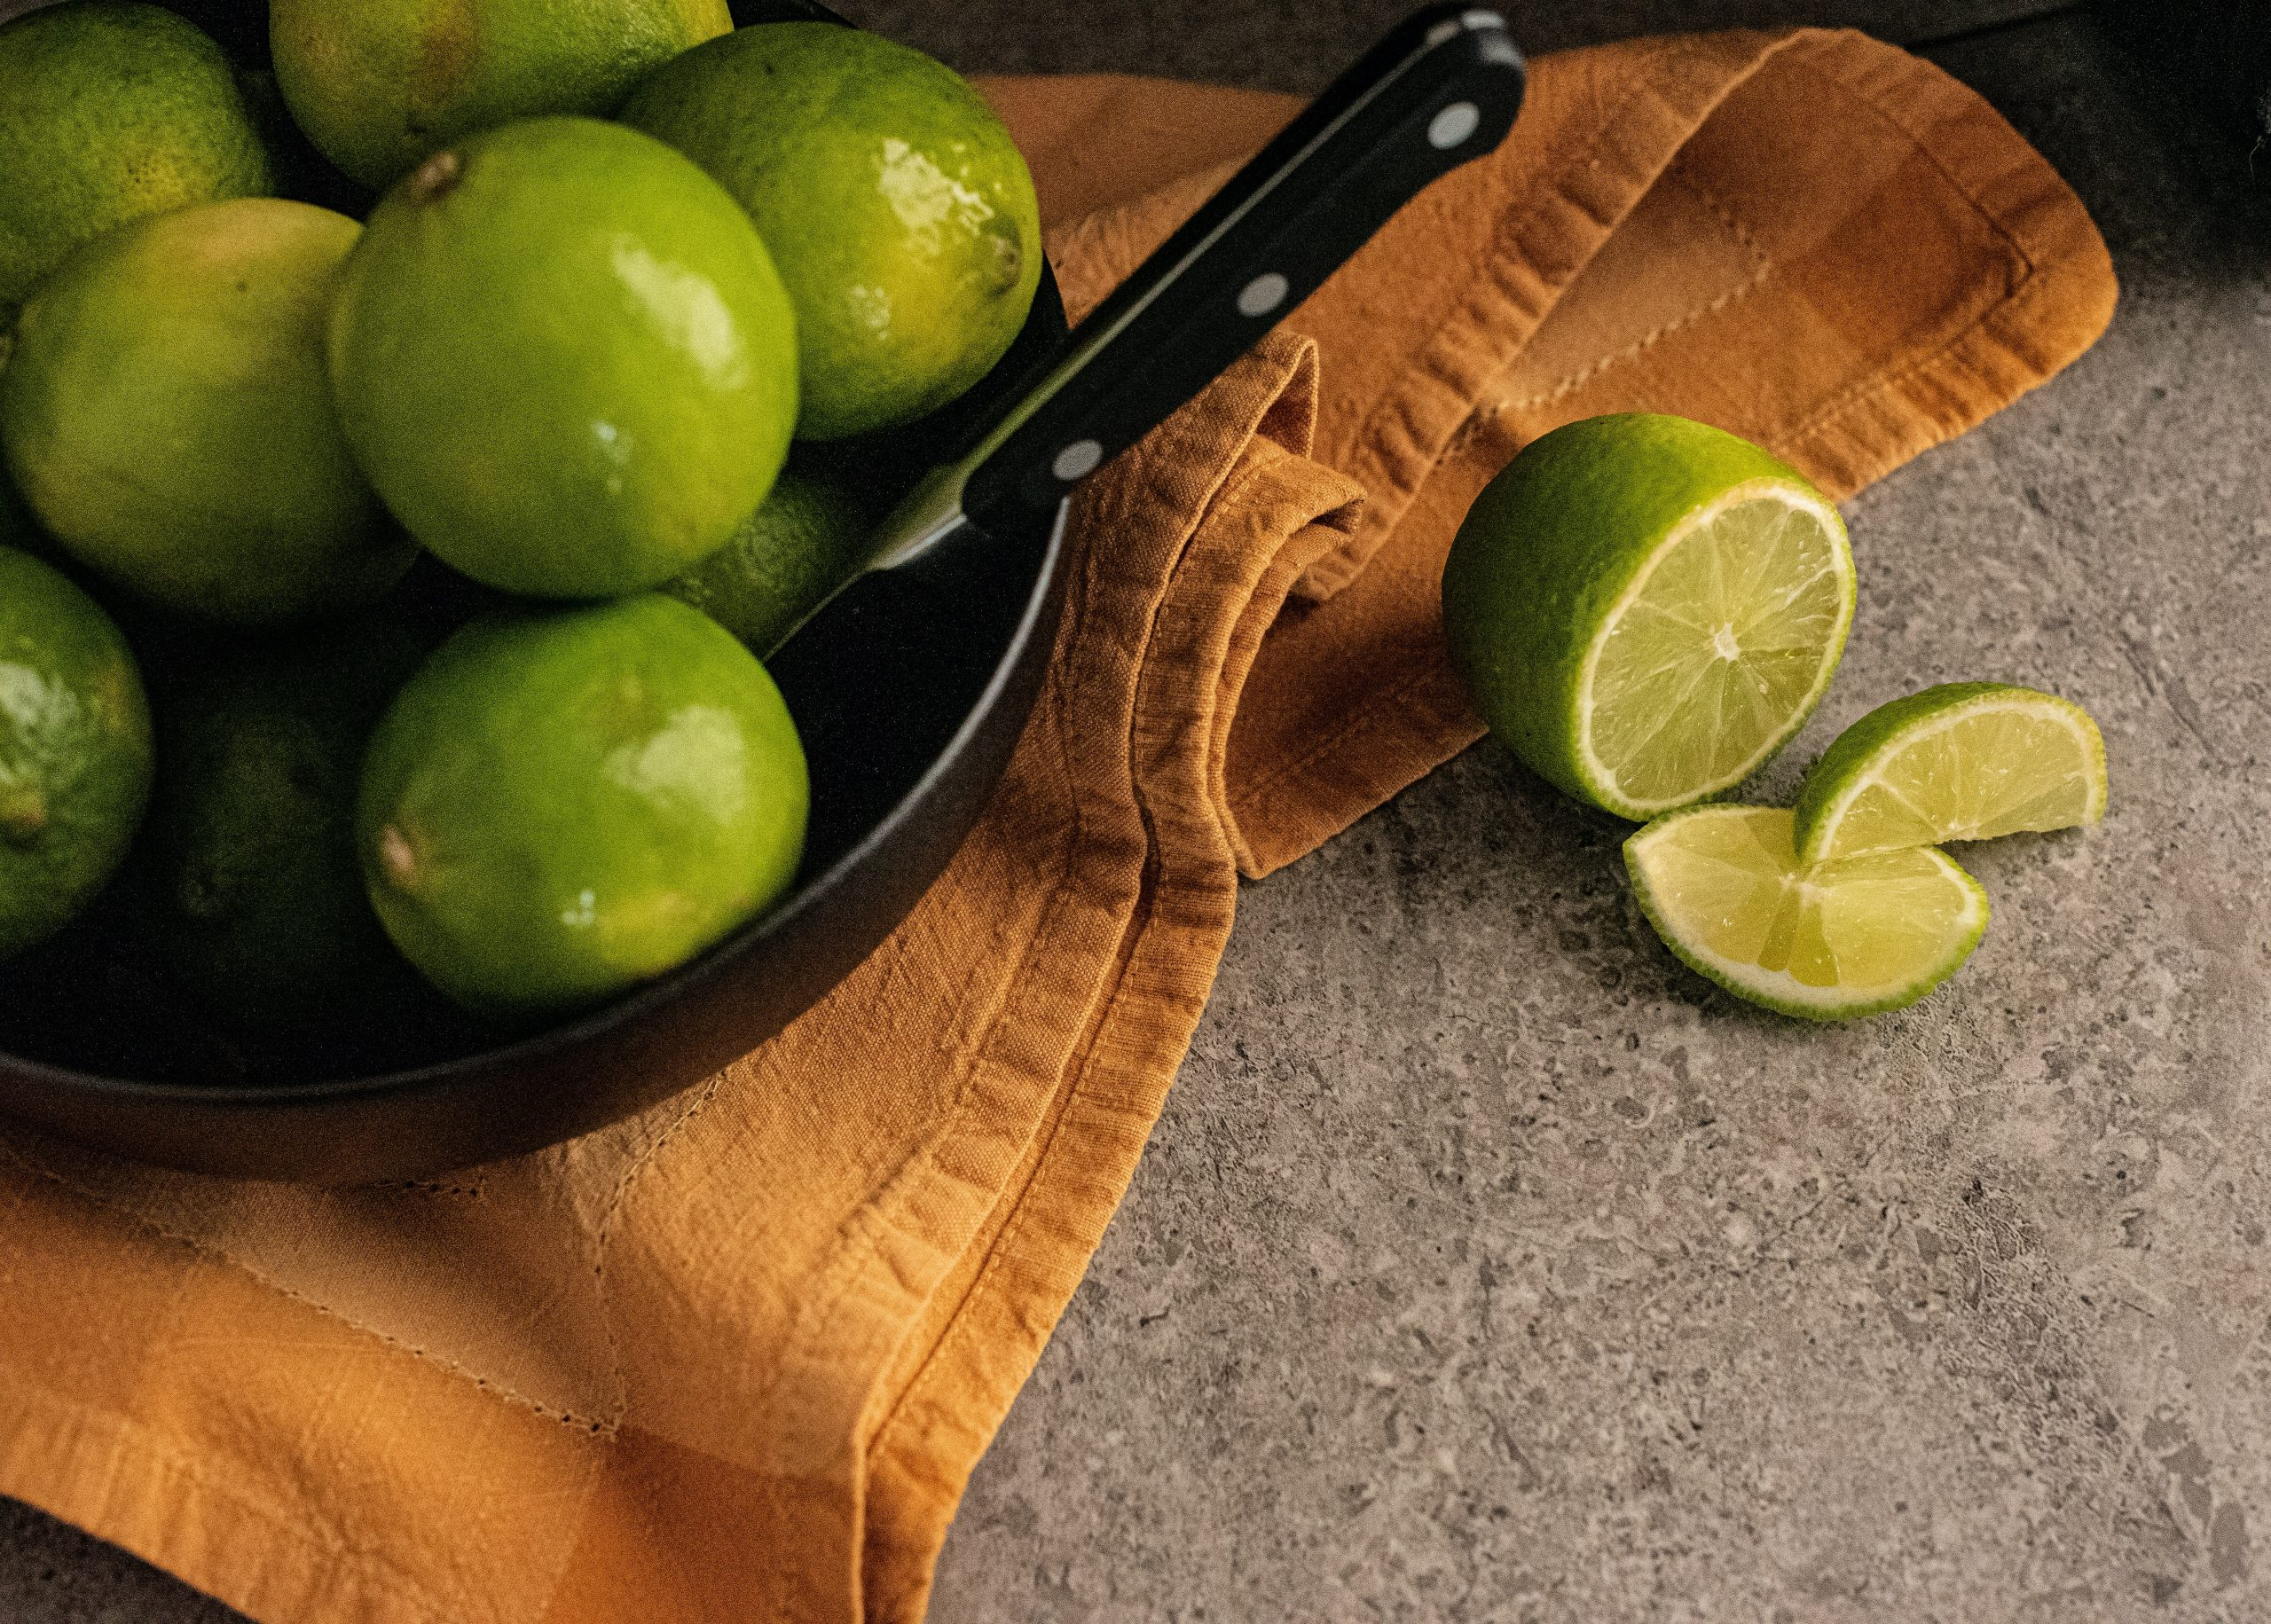 A black pan containing lemons and a knife placed on a yellowish brown cloth with cut pieces of lemon on the side